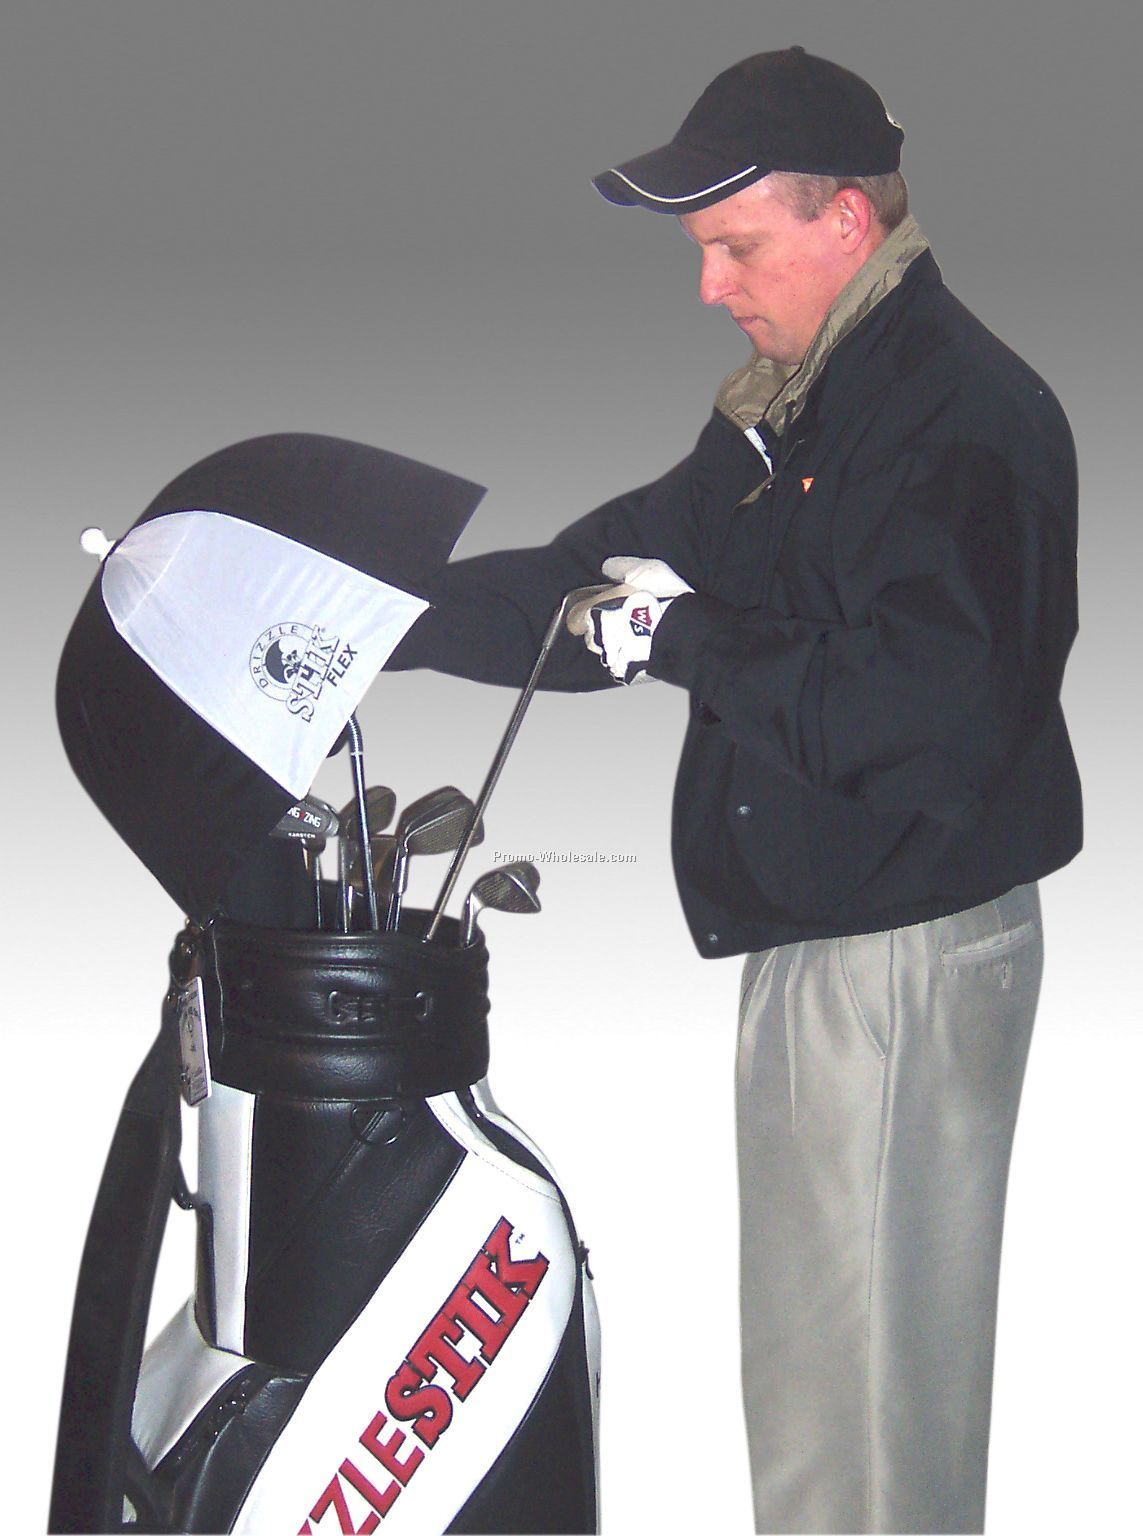 Drizzlestik / Drizzlestik Flex Golf Bag Umbrella